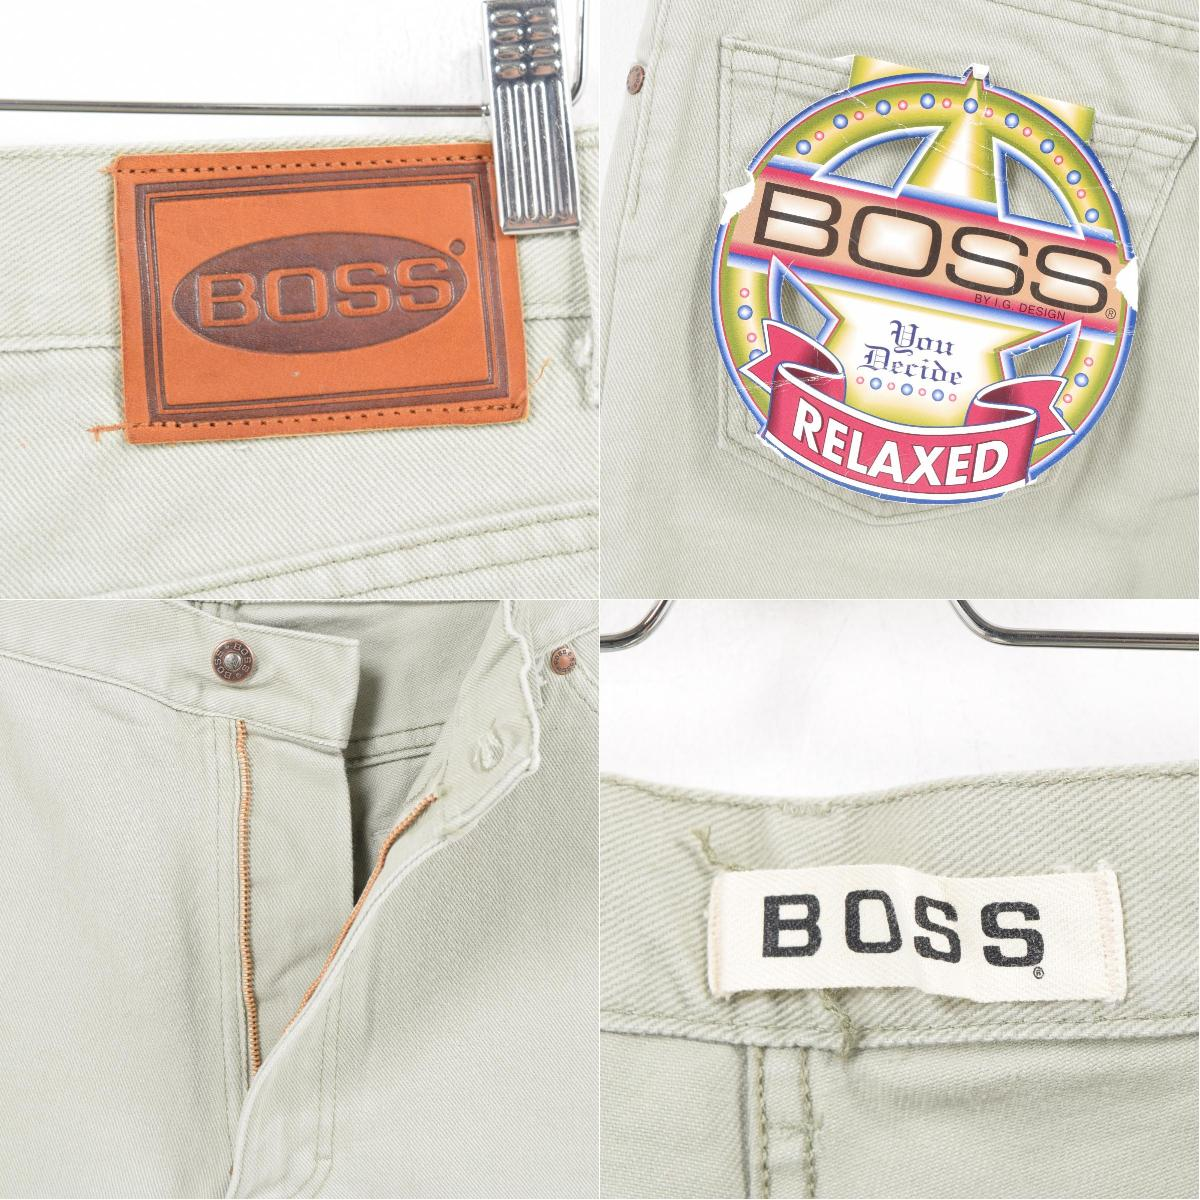 8326ed17 ... Men w35 /war9834 made in boss BOSS color denim shorts short pants USA  with the. Share ...